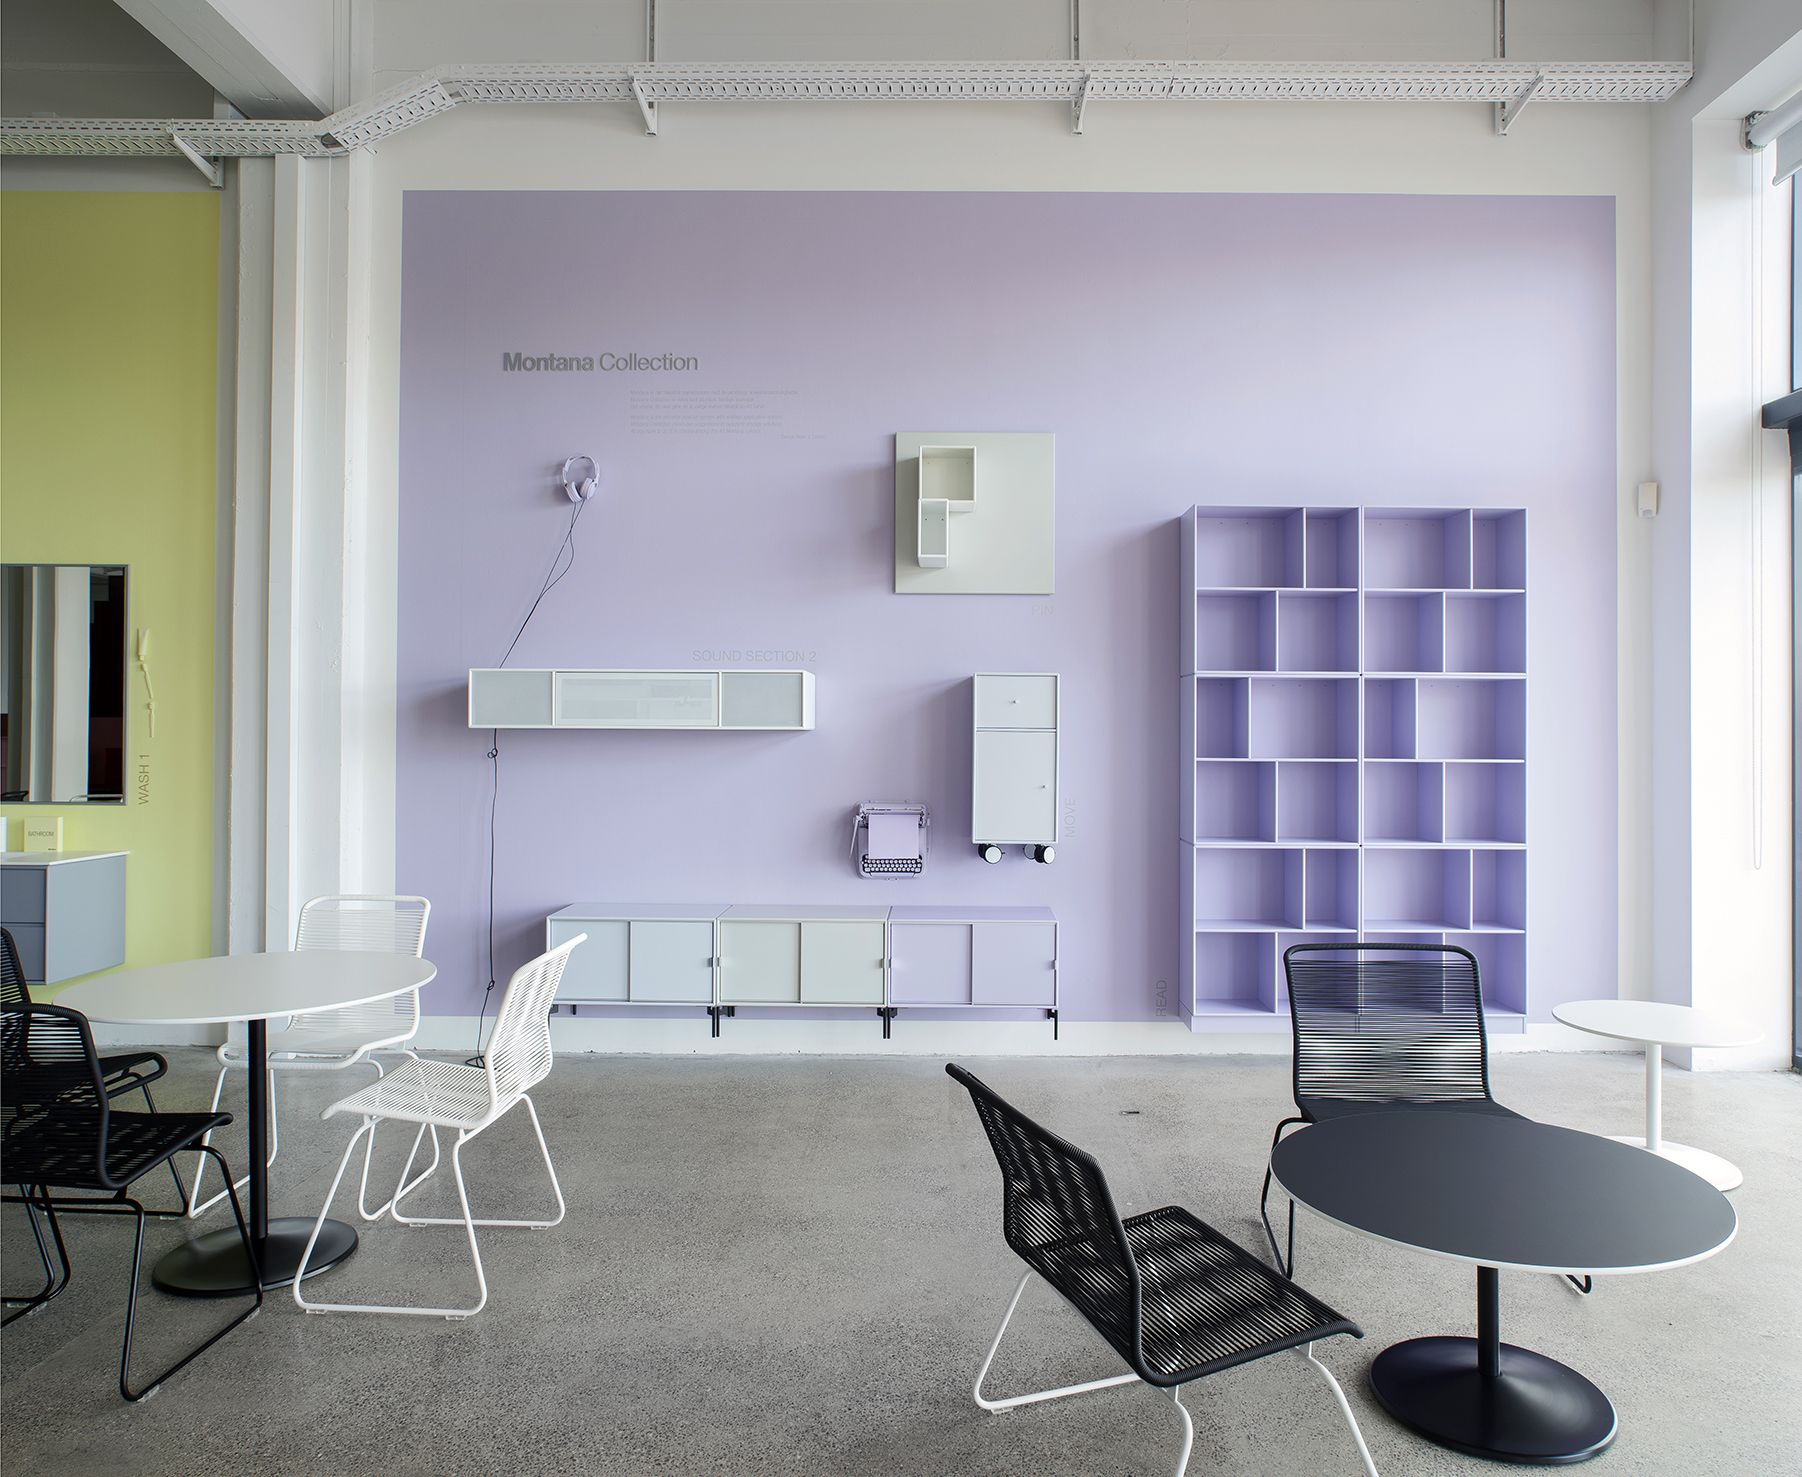 Copenhagen Showroom 2015 The Violetta Wall Showing Montana